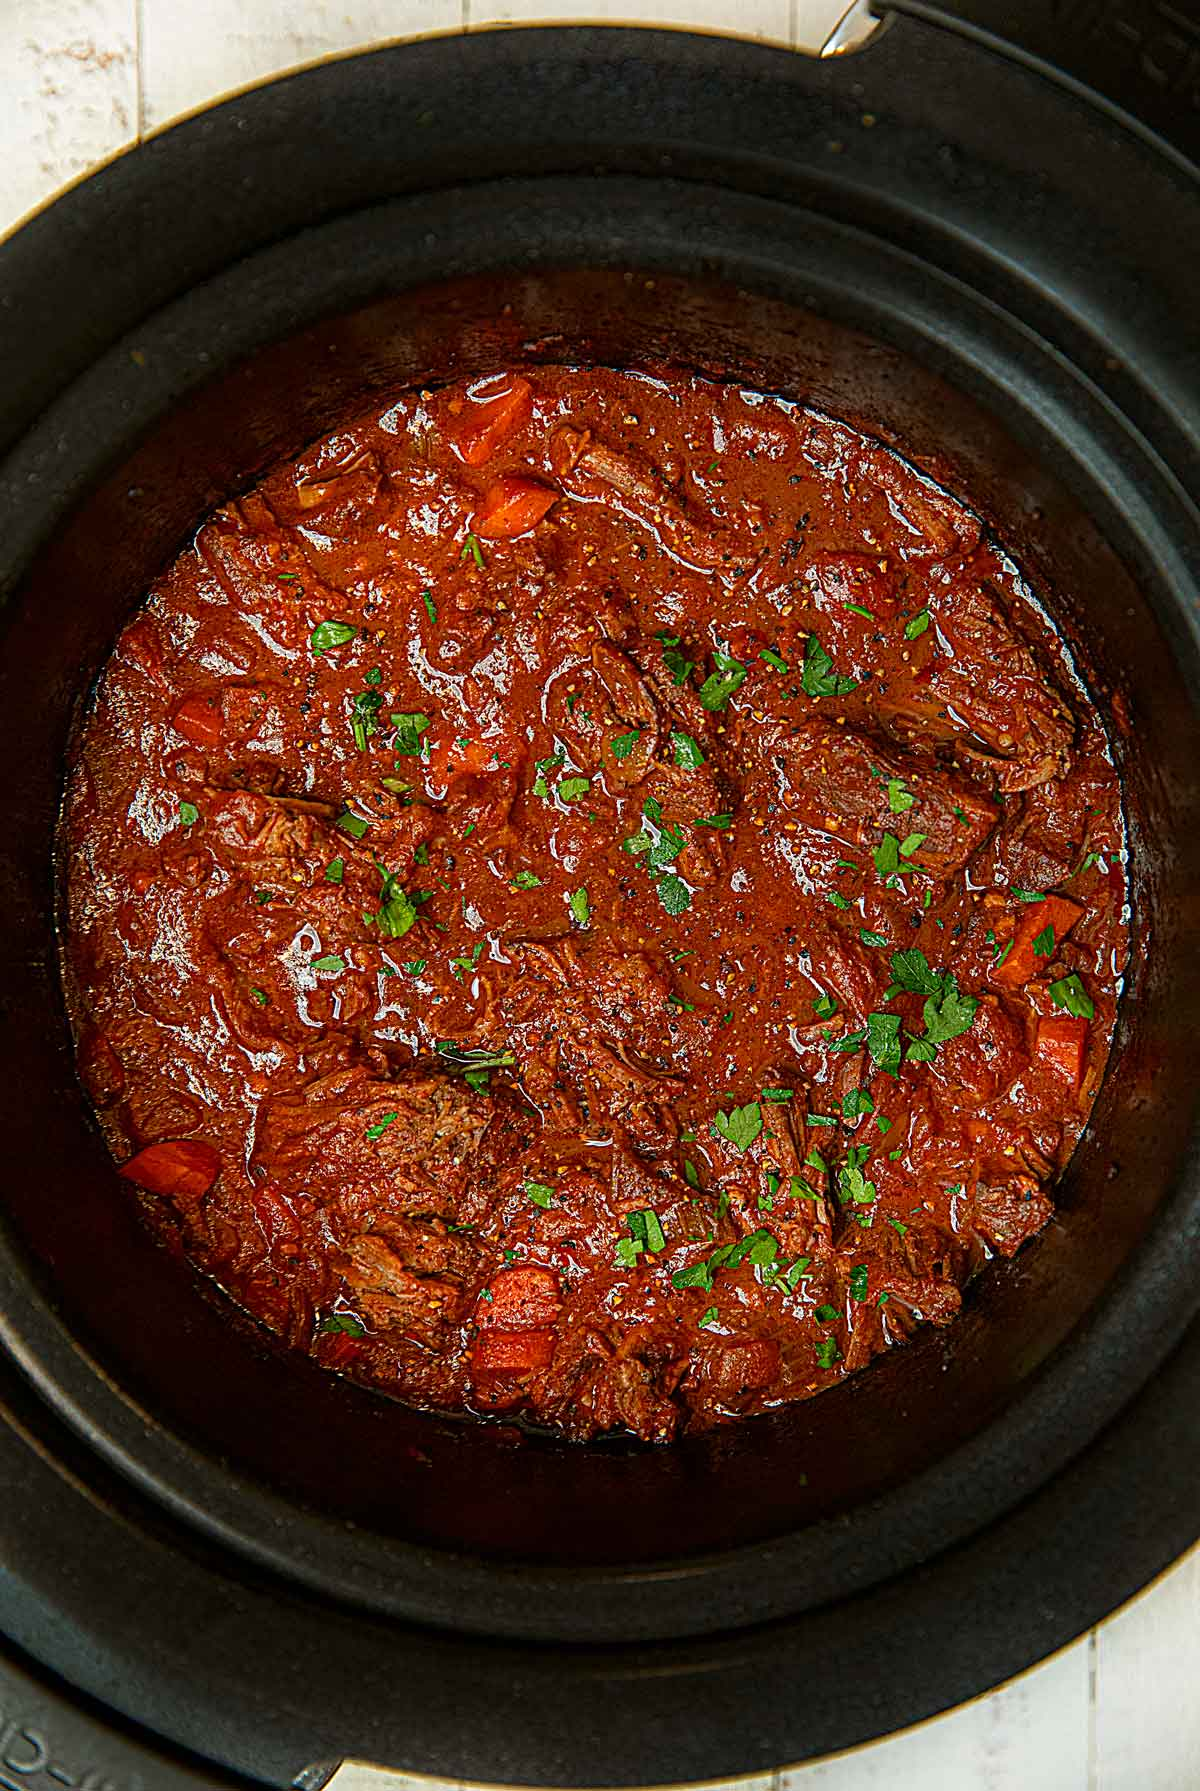 Healthy Beef Ragu in slow cooker after cooking and shredding